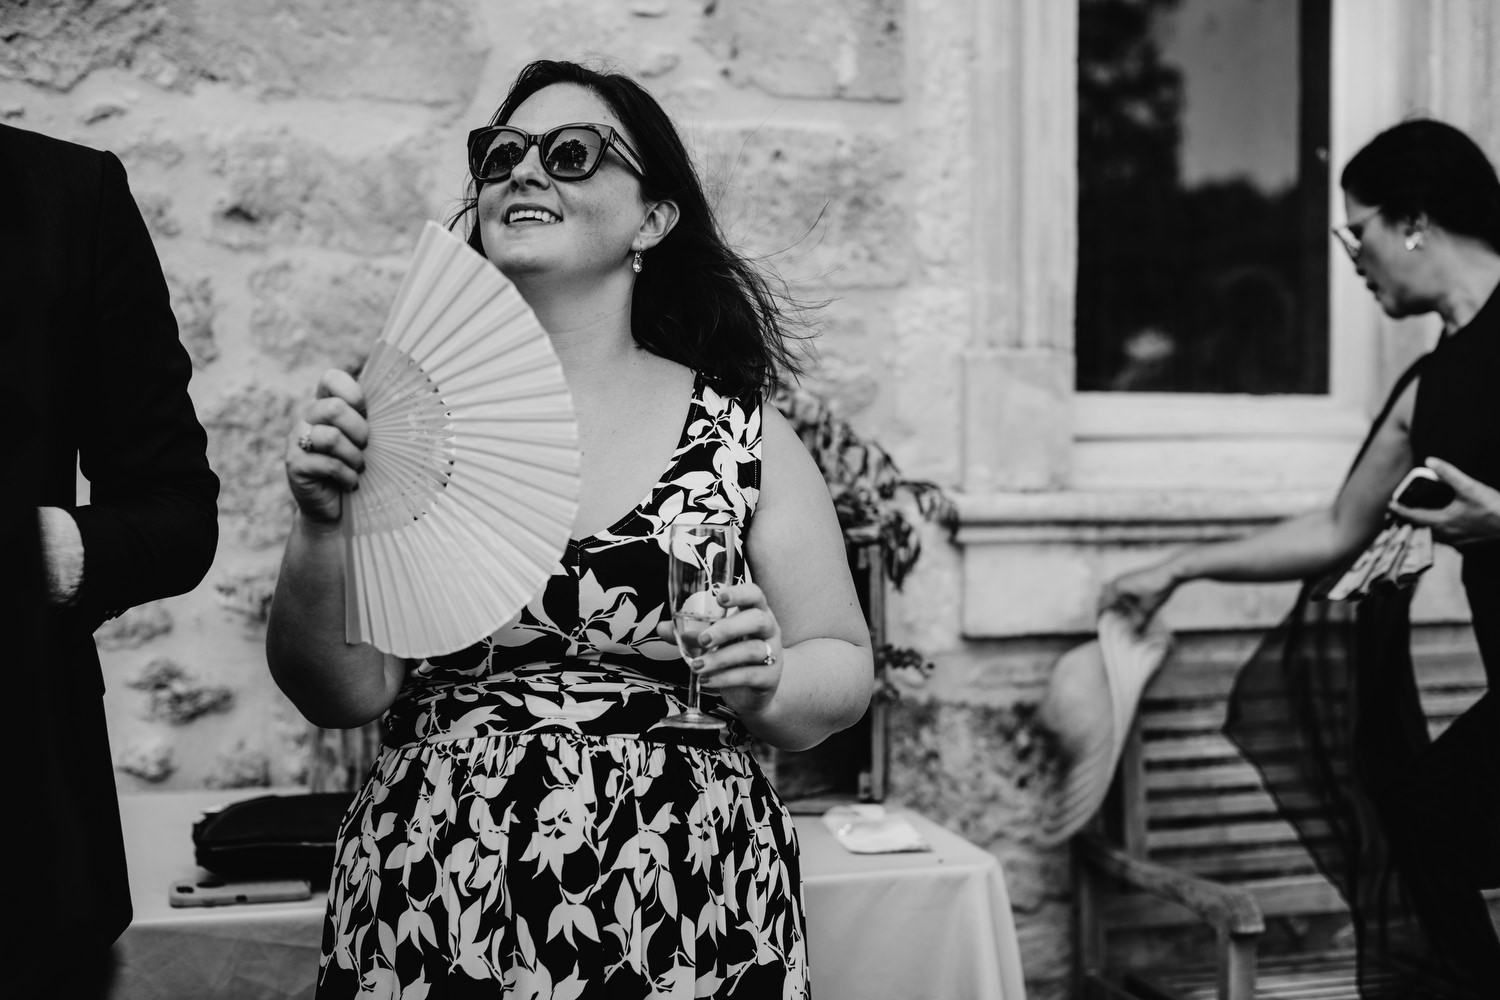 guest keeps cool at hot wedding